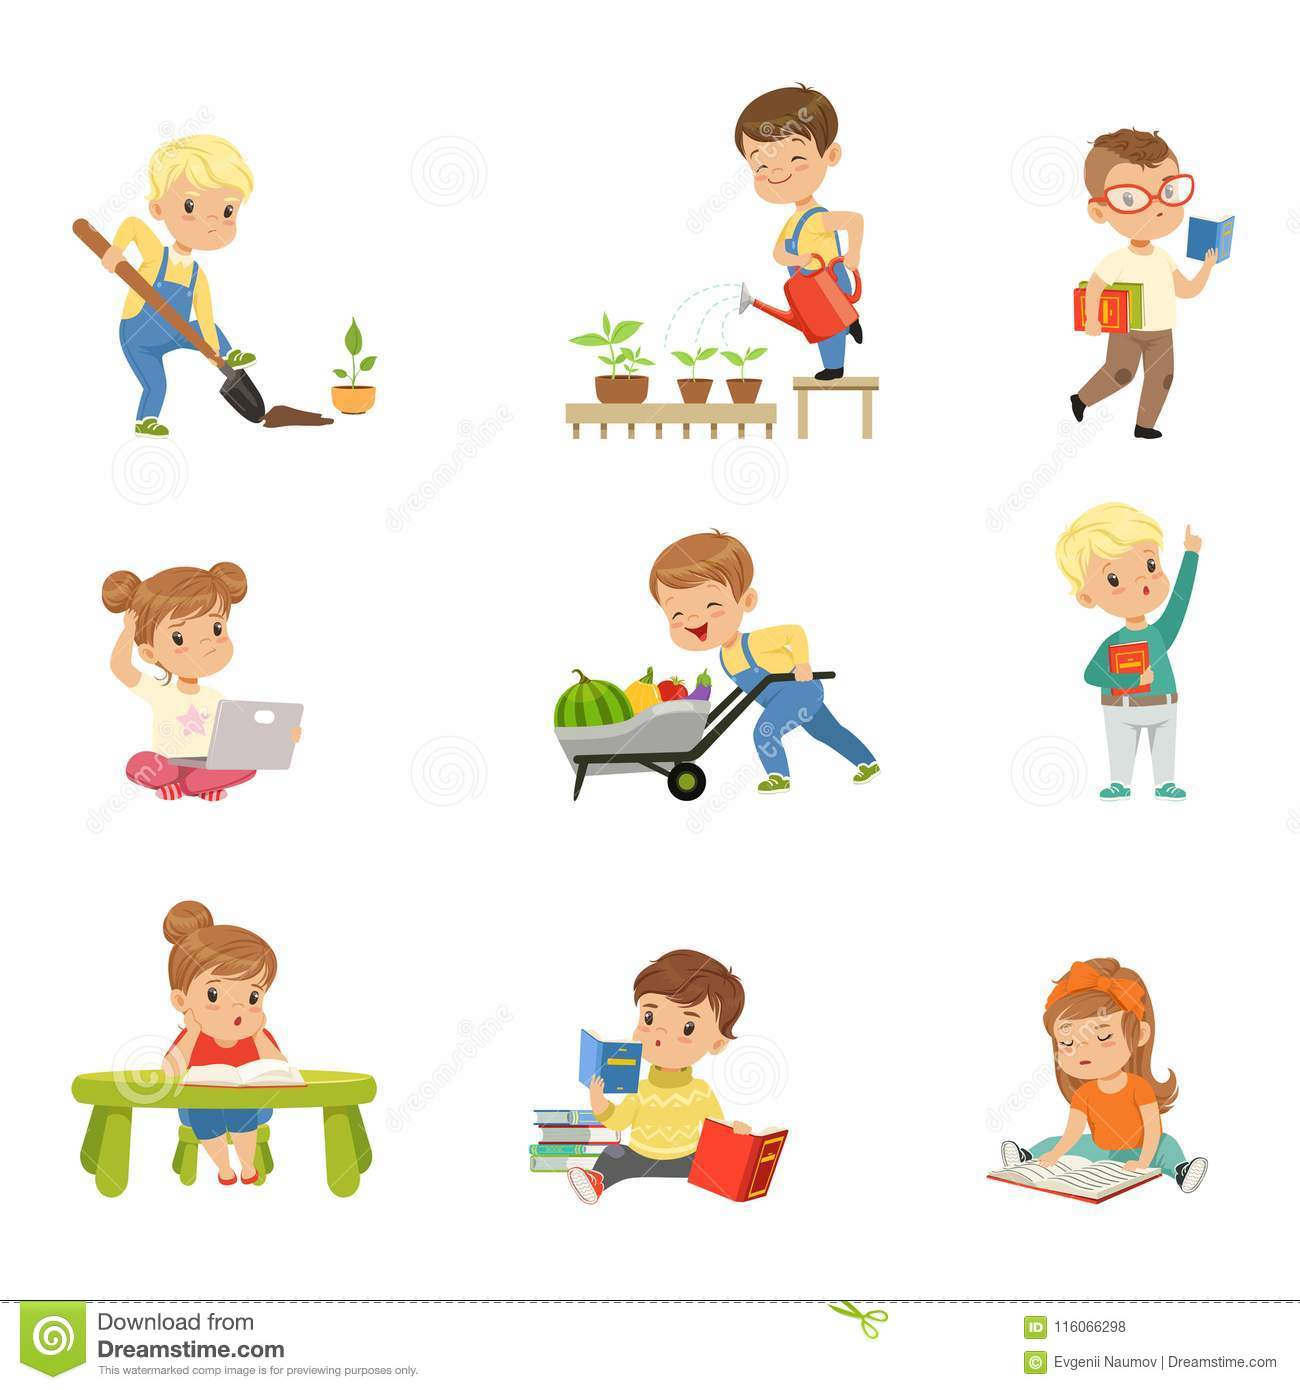 Adorable little kids reading books and working in the garden set, cute preschool children learning, studying and